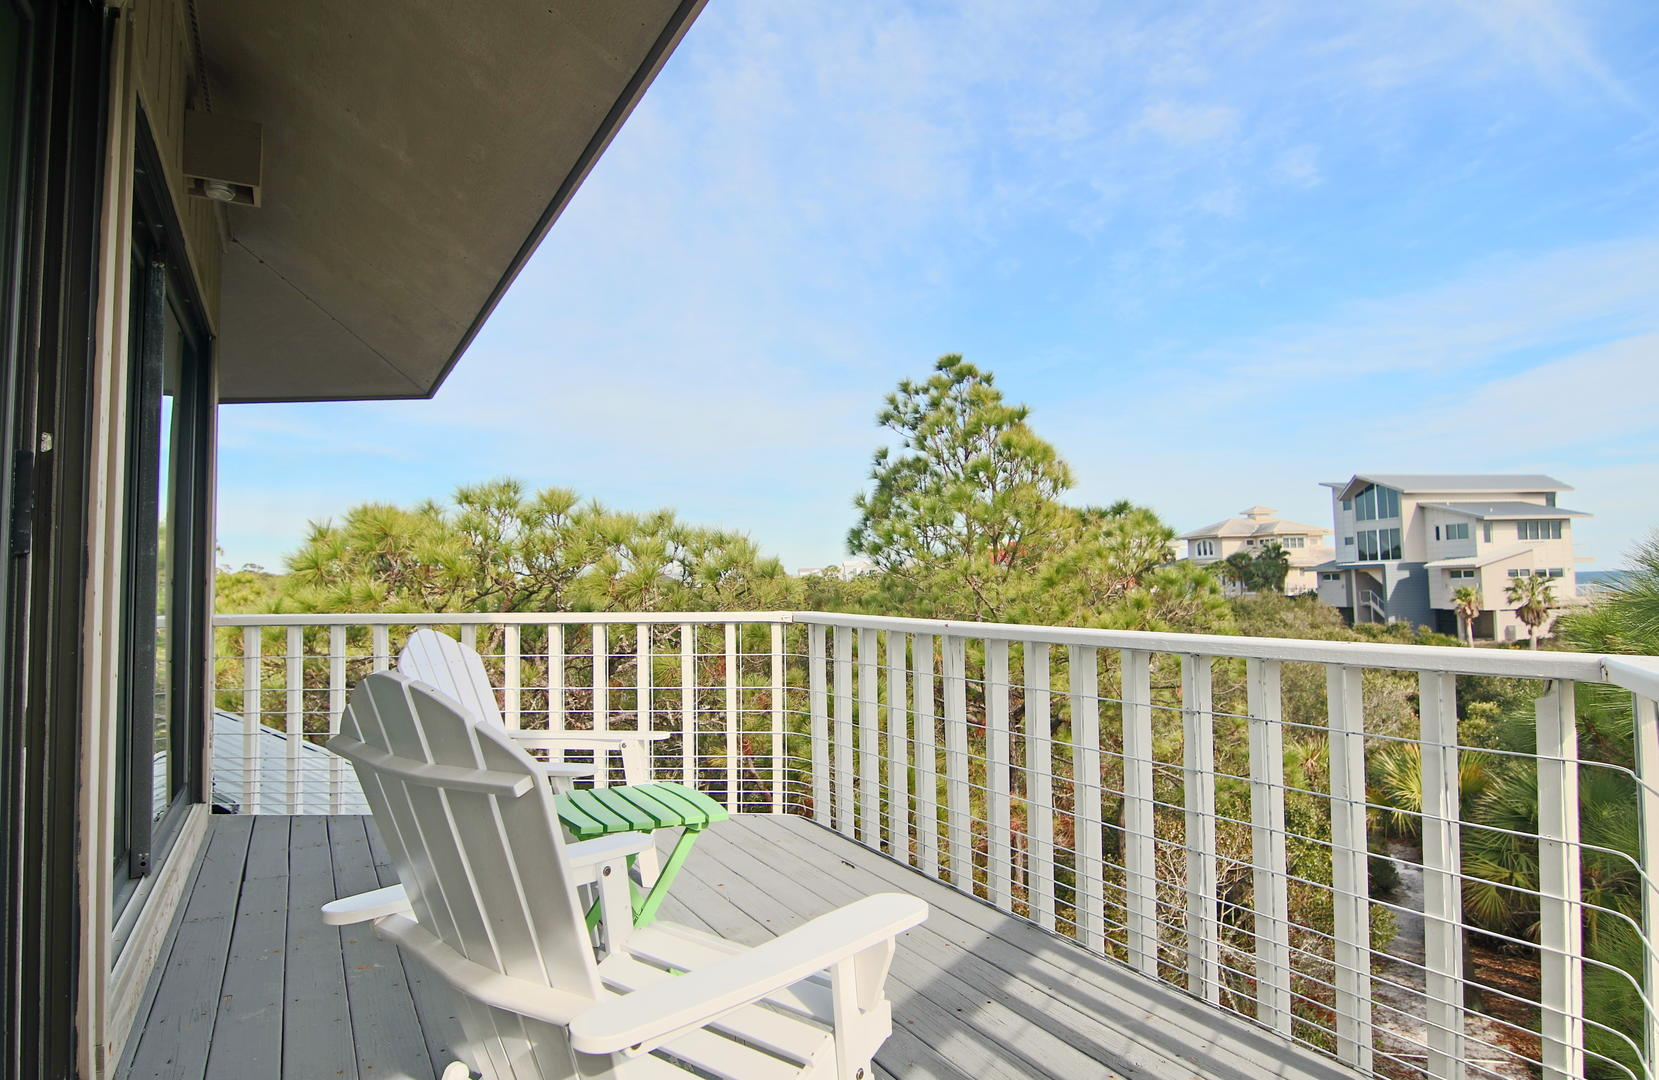 Enjoy the breeze and views while lounging on this second level deck.